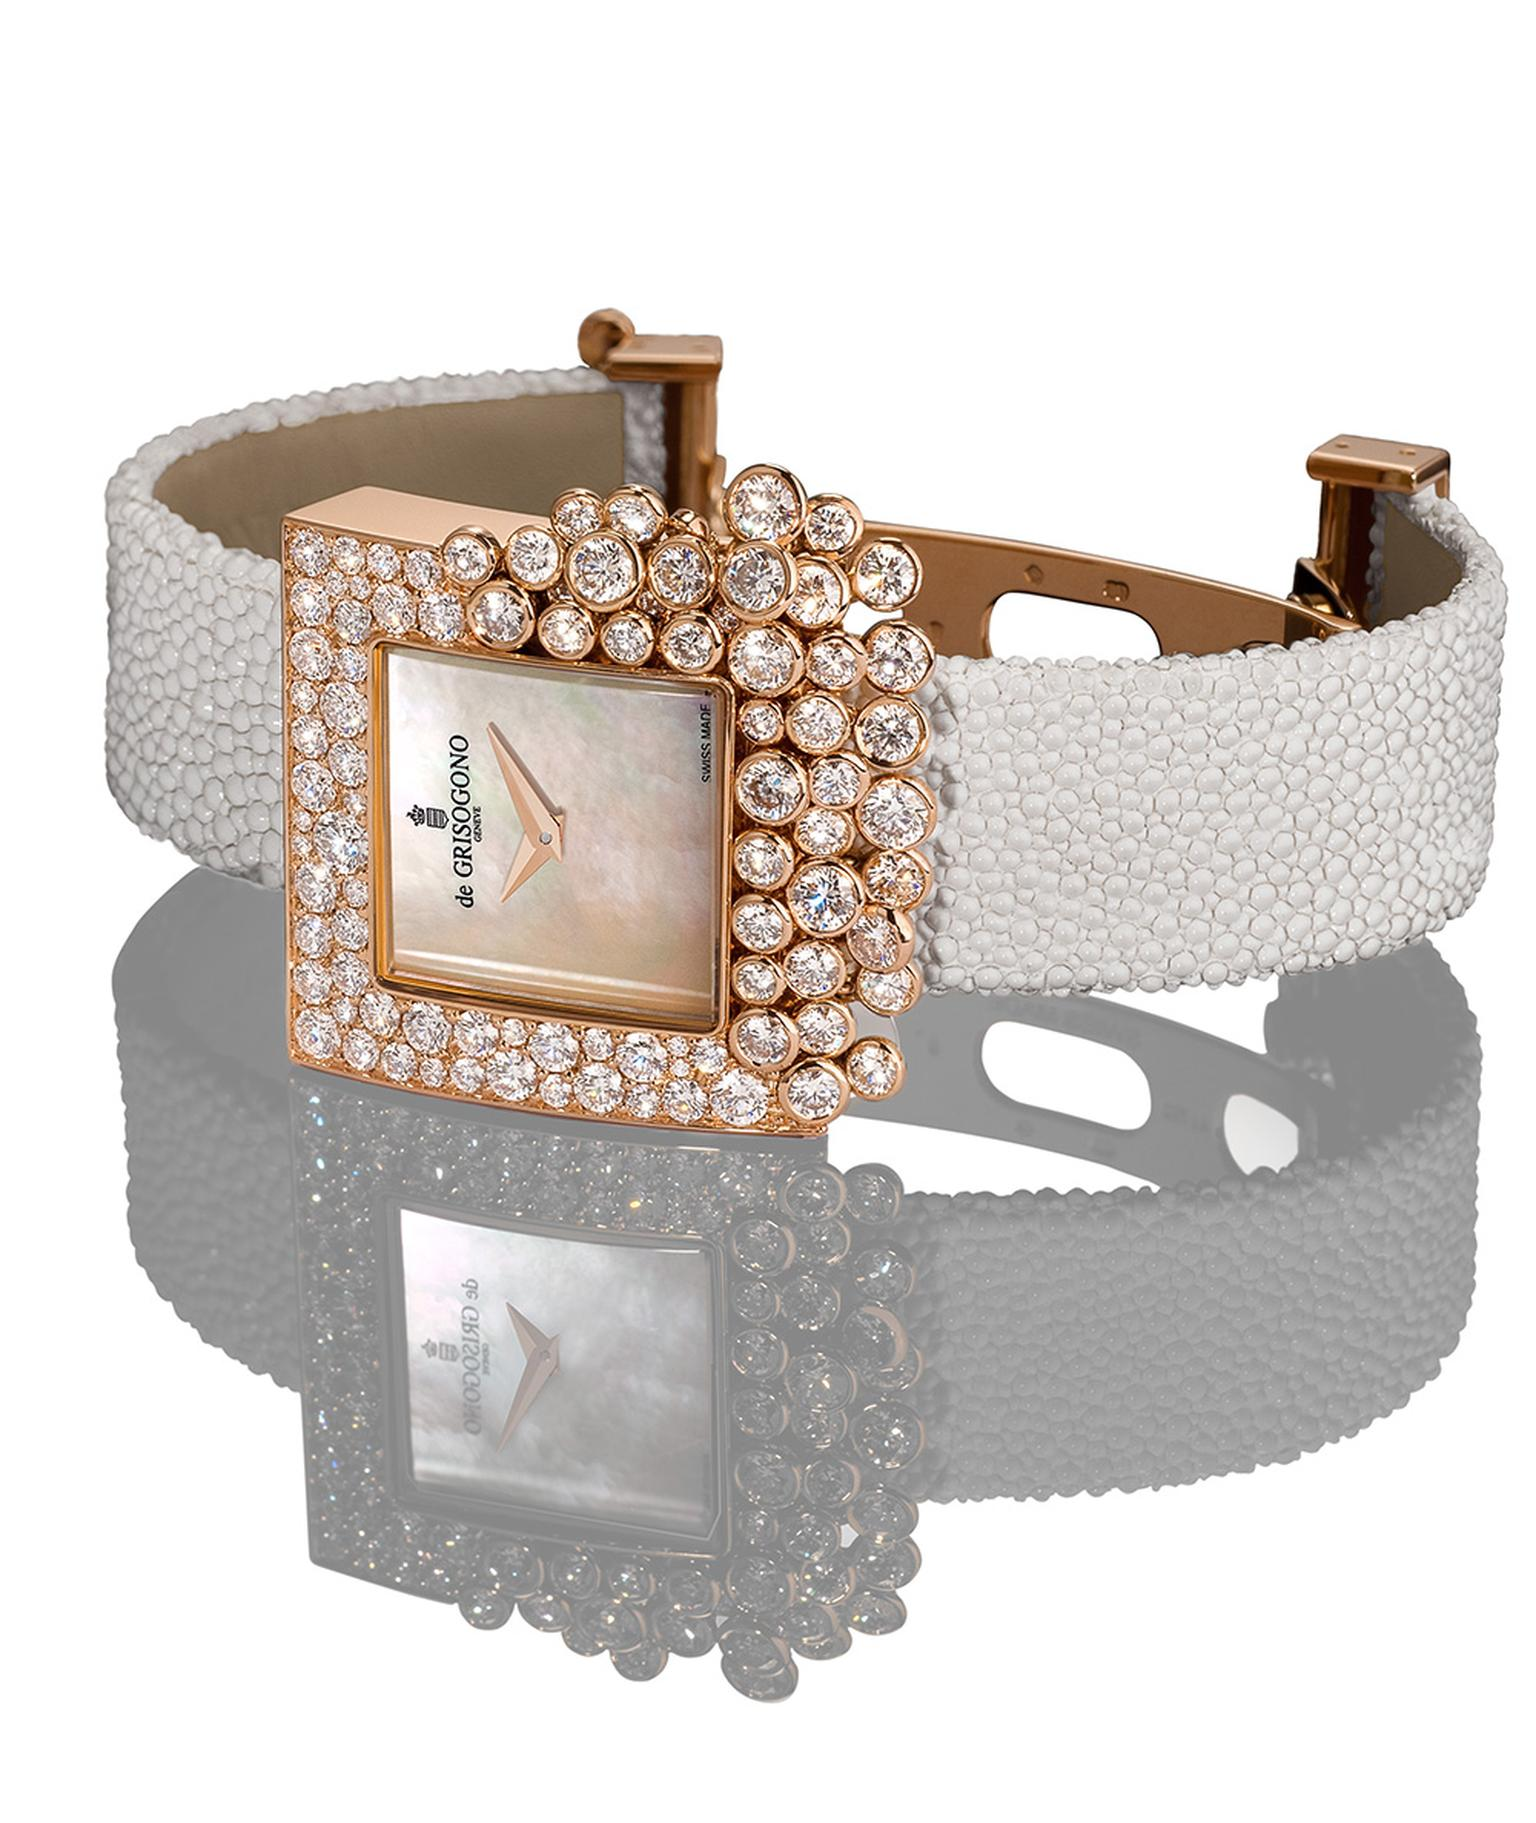 deGRISOGONO-SUGAR-WATCH-WHITE-S06-WB.jpg